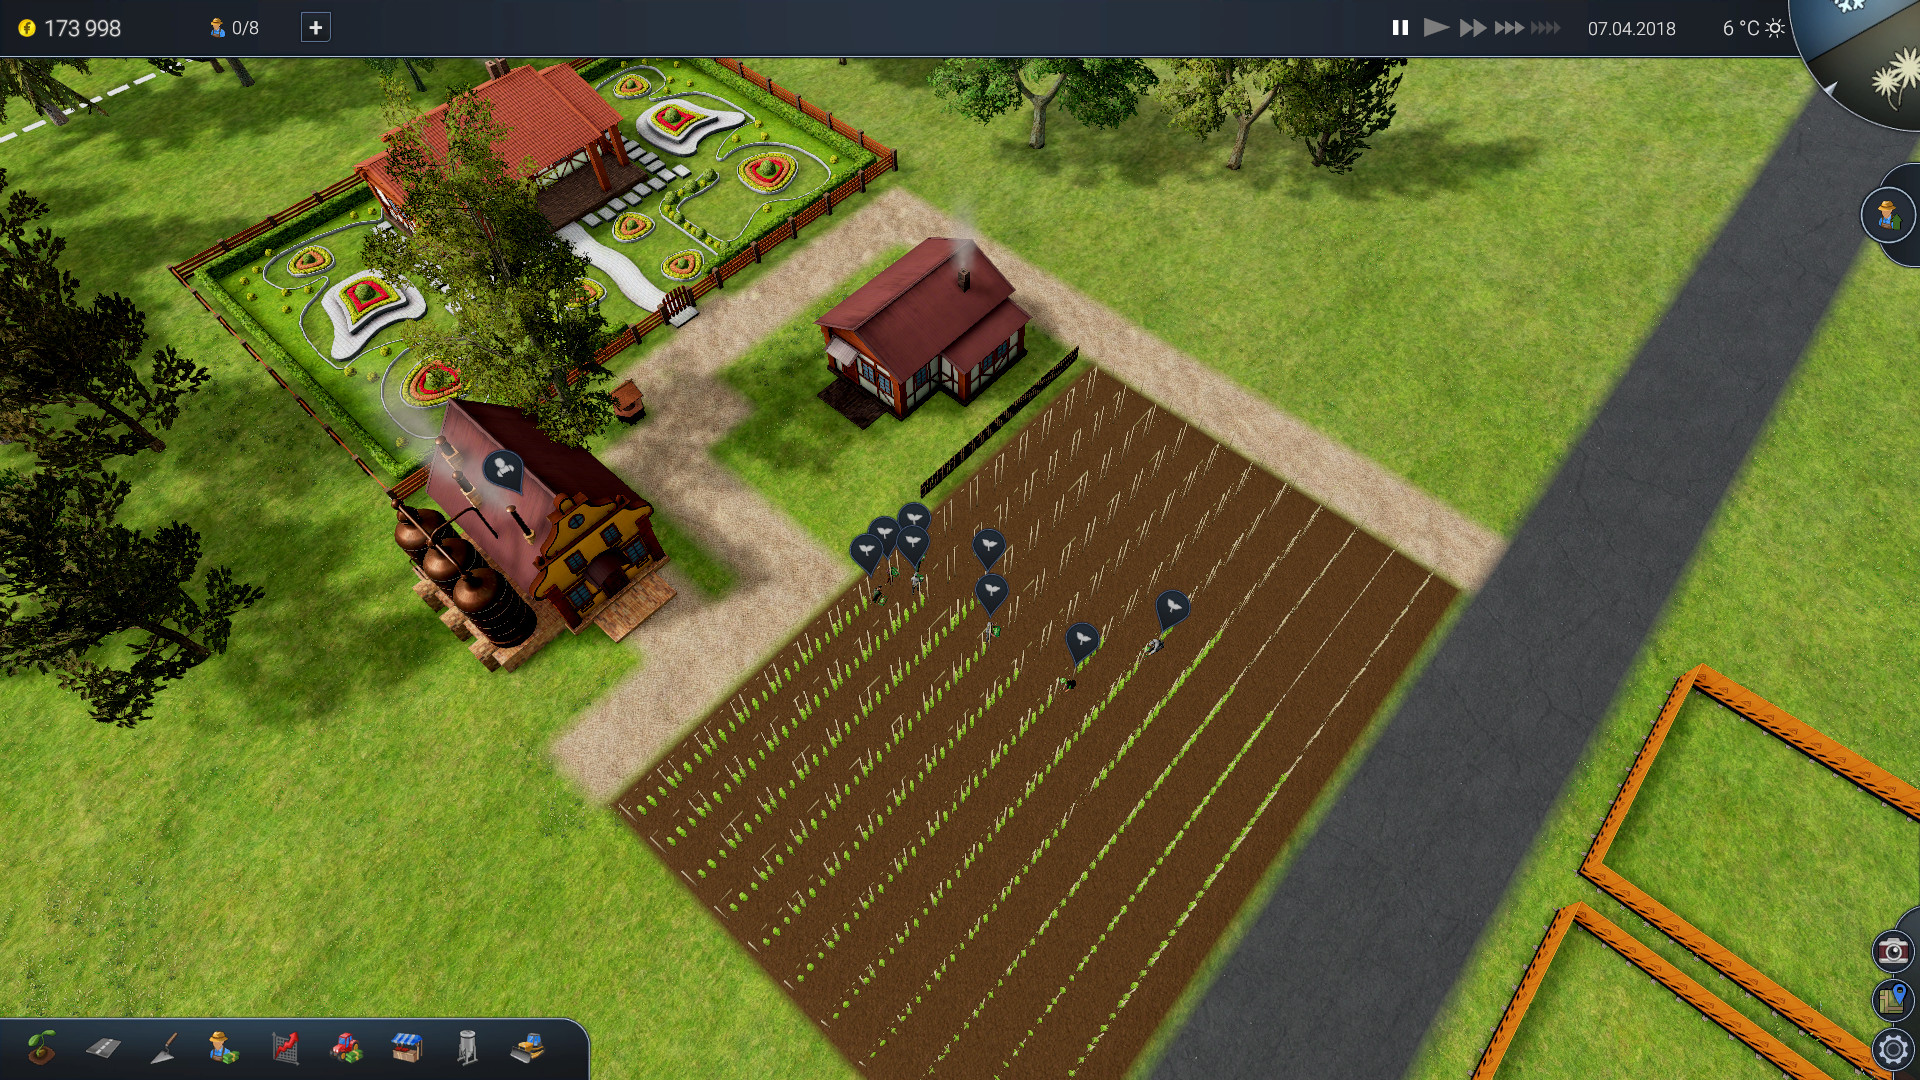 Farm Manager 2018 - Brewing & Winemaking DLC screenshot